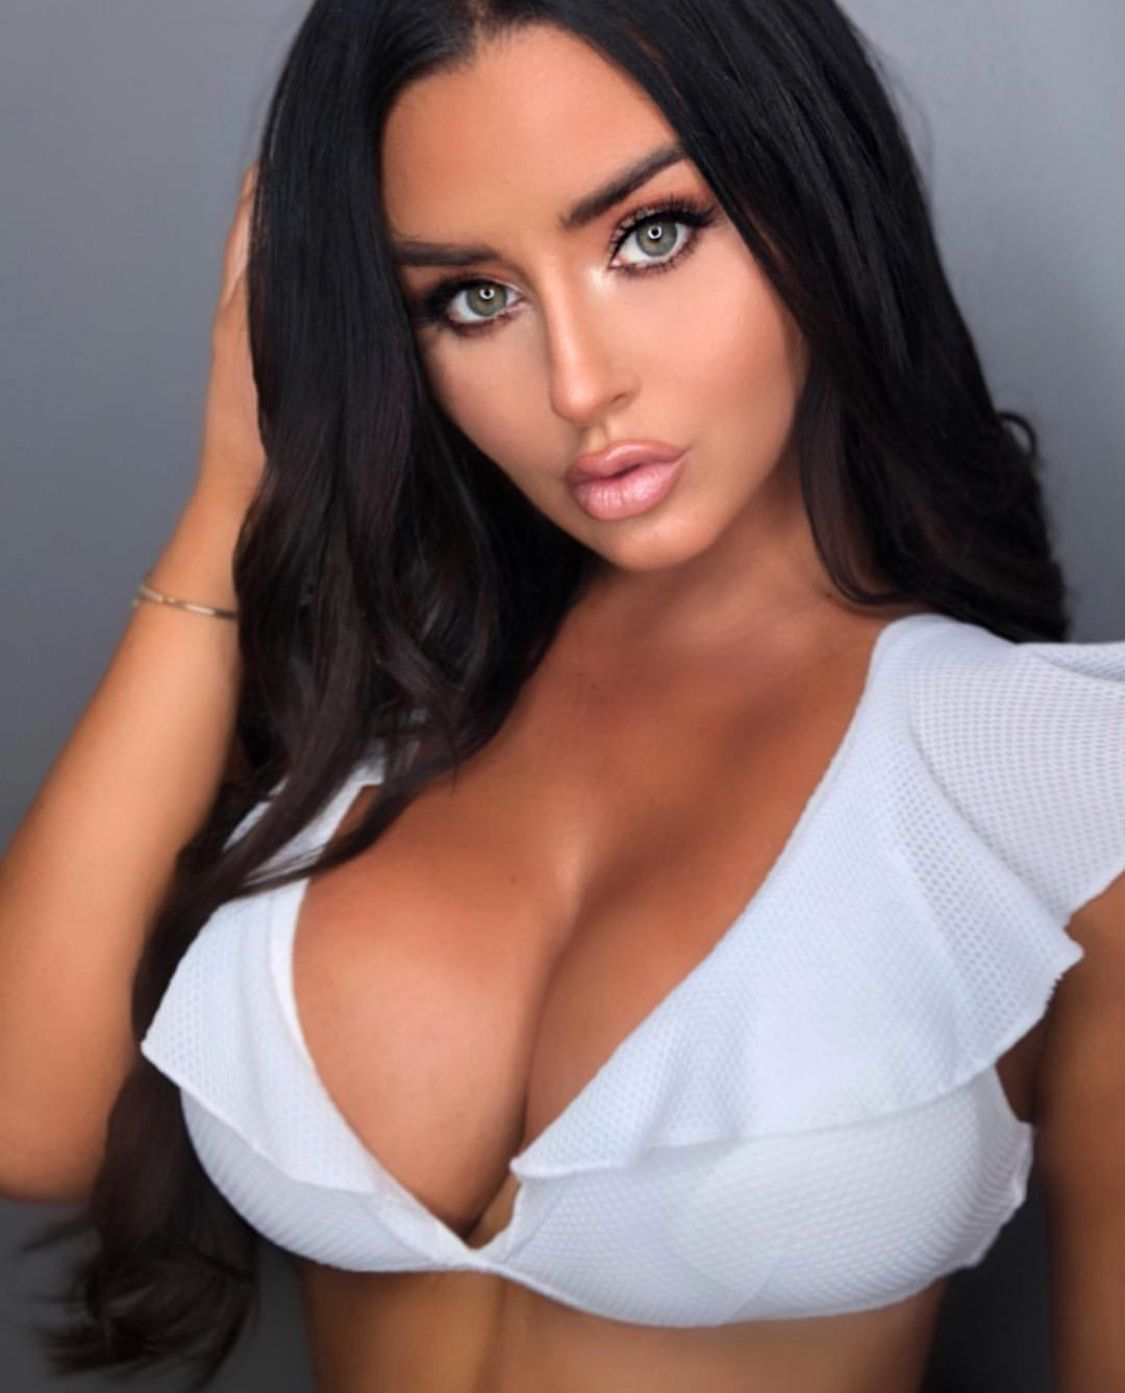 Oh Abigail Abigail Ratchford Sexy Beautiful Boobs